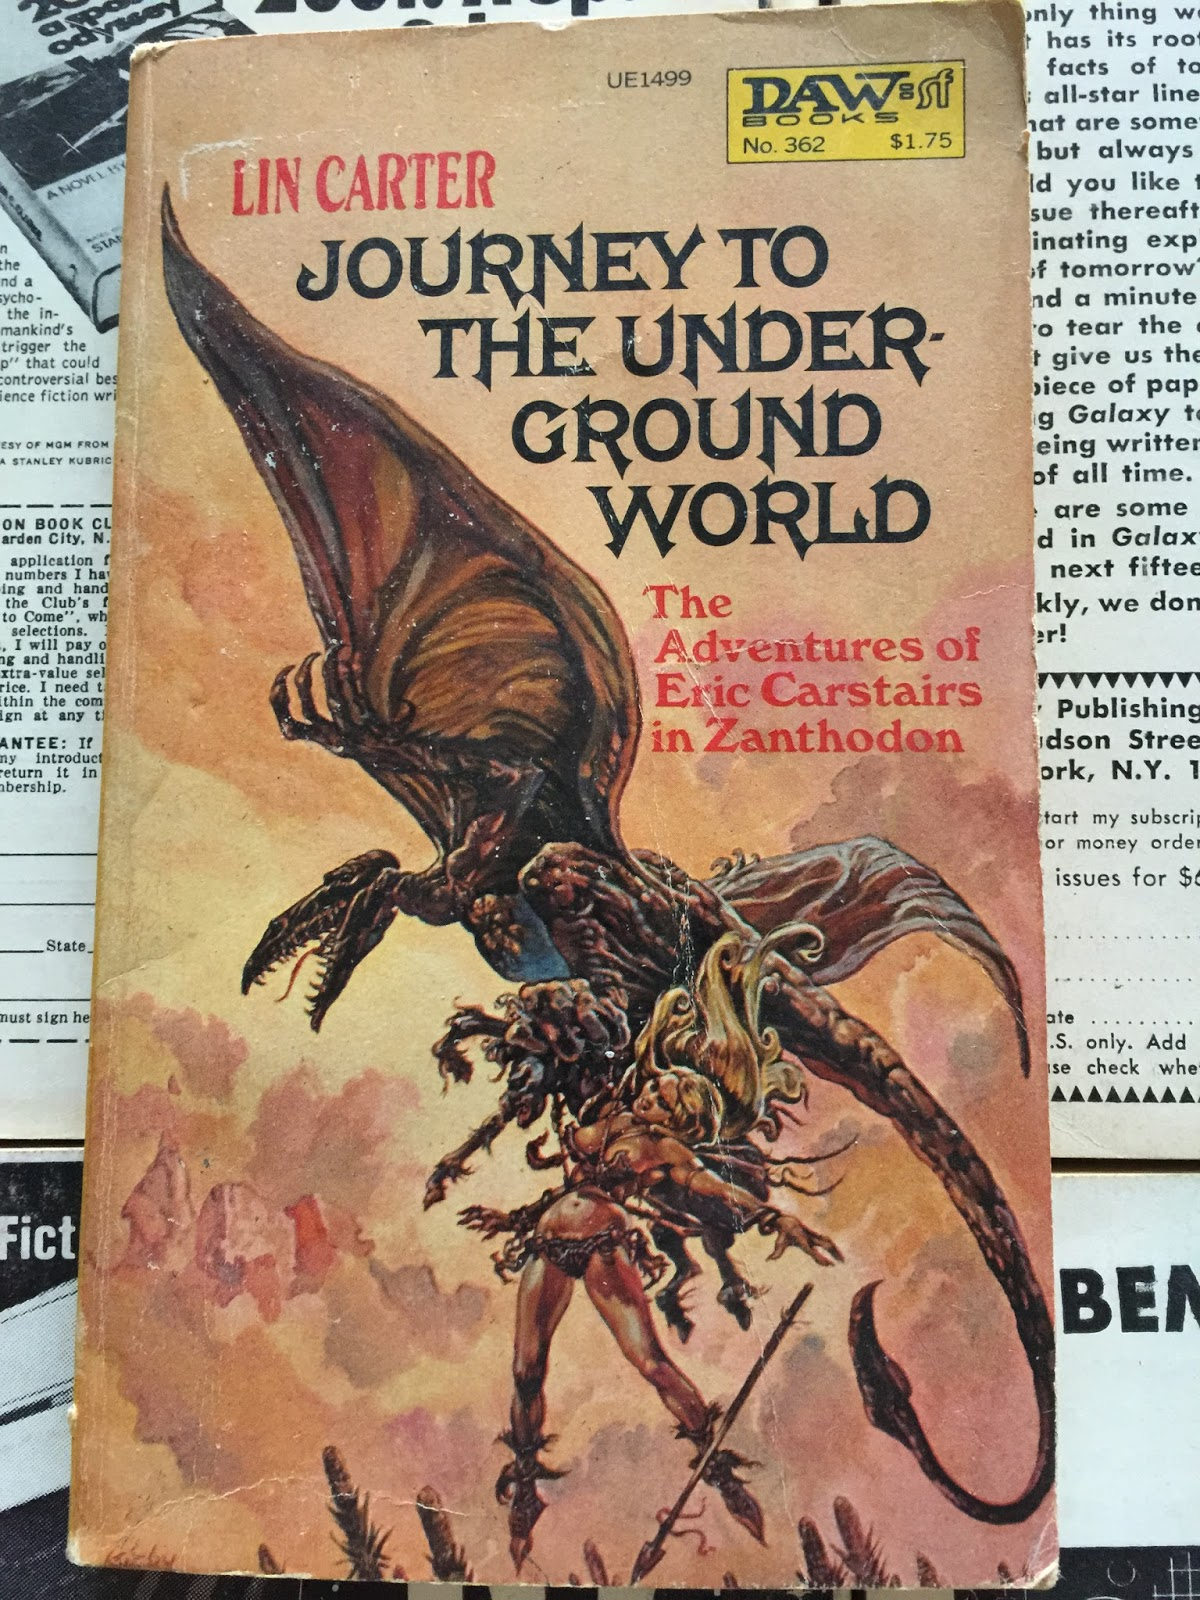 Book Cover Fantasy Exvius ~ First edition fantasy vintage science fiction book covers